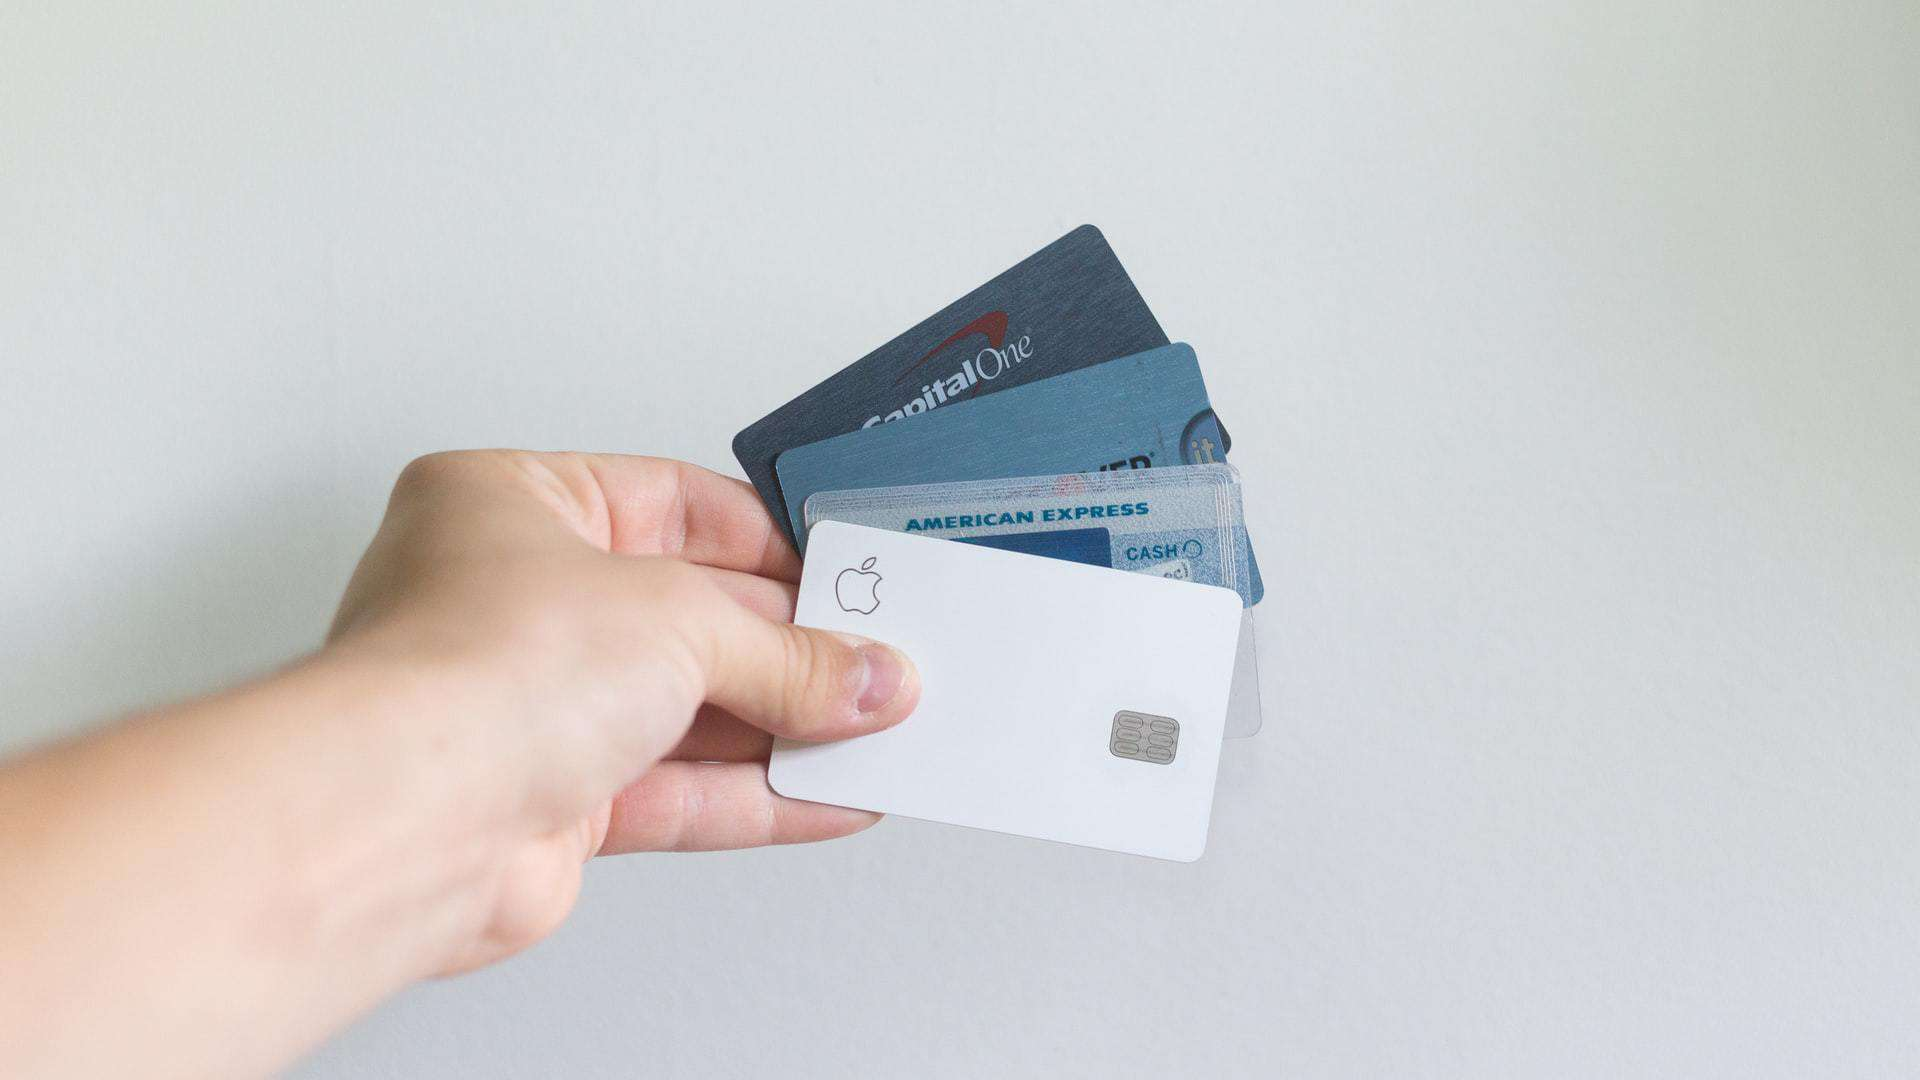 Person holding 4 credit cards